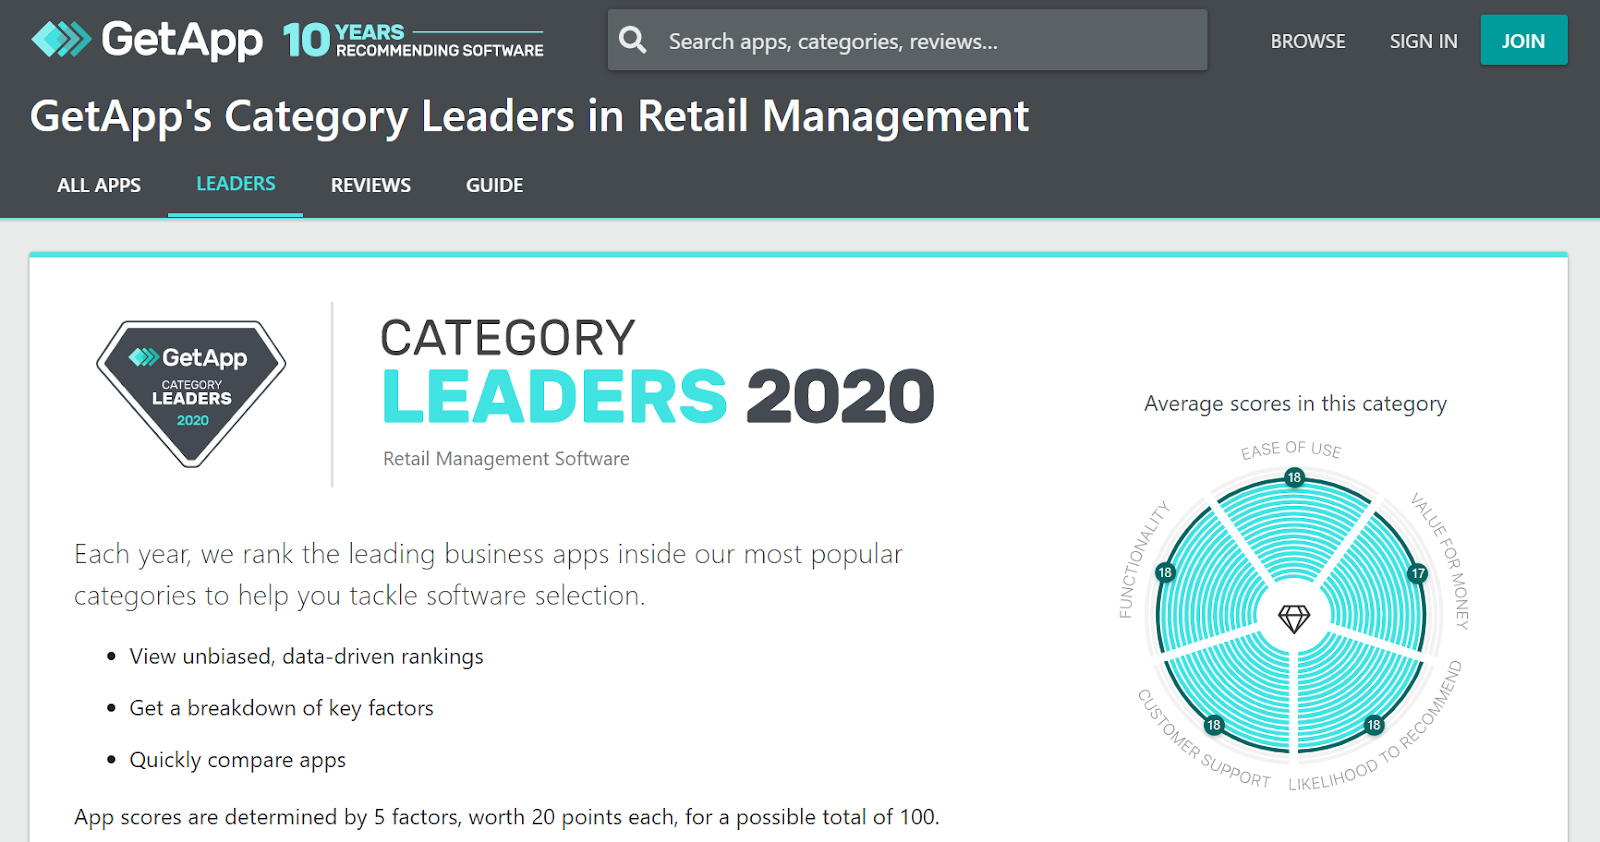 GetApp's 2020 Category Leaders for Retail Management